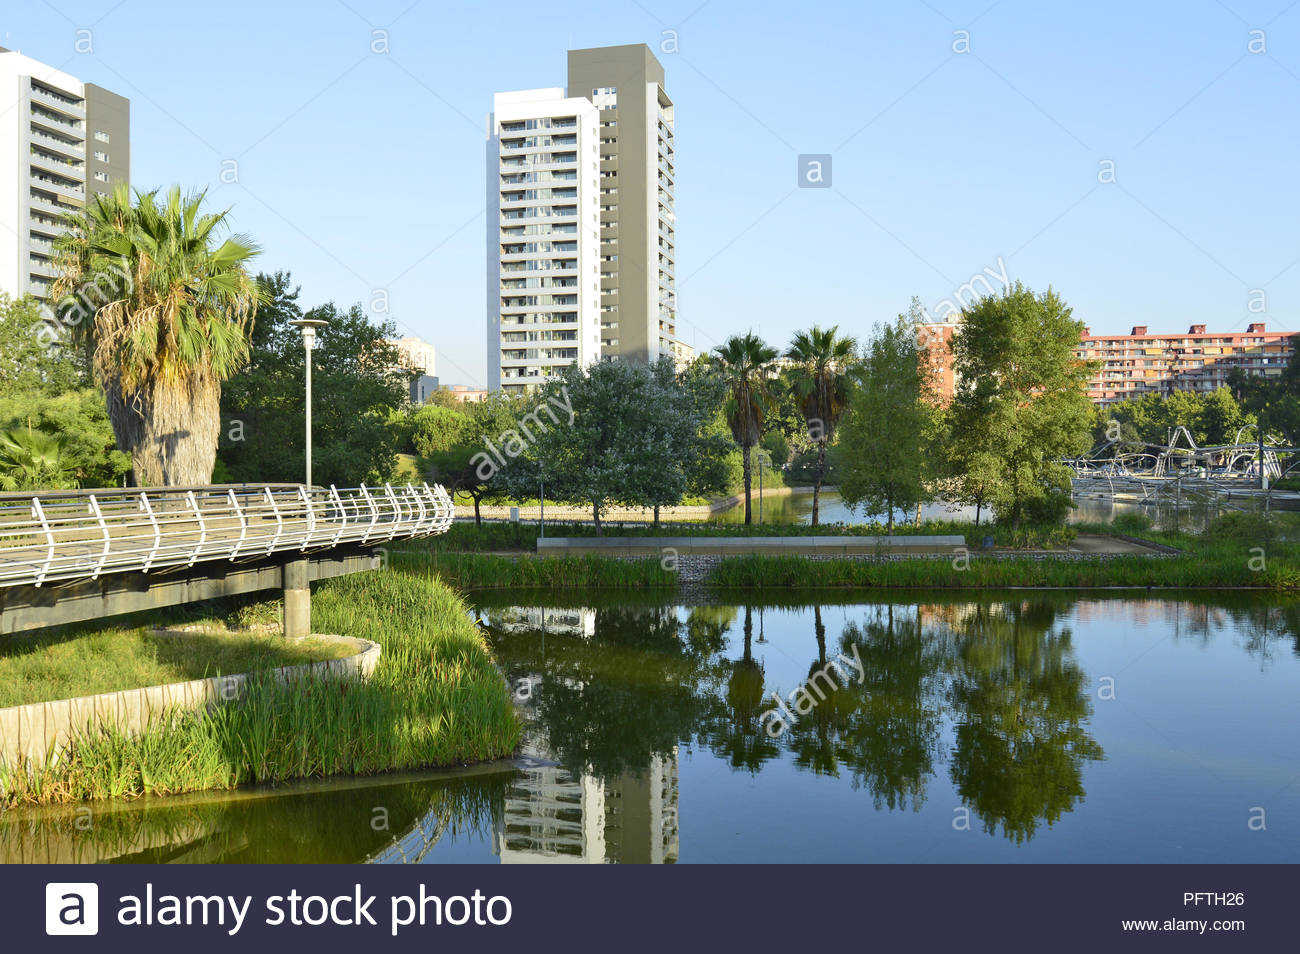 Parc Diagonal Mar - urban parkland with lakes and modern residential properties in Sant Marti district of Barcelona Spain. Stock Photo